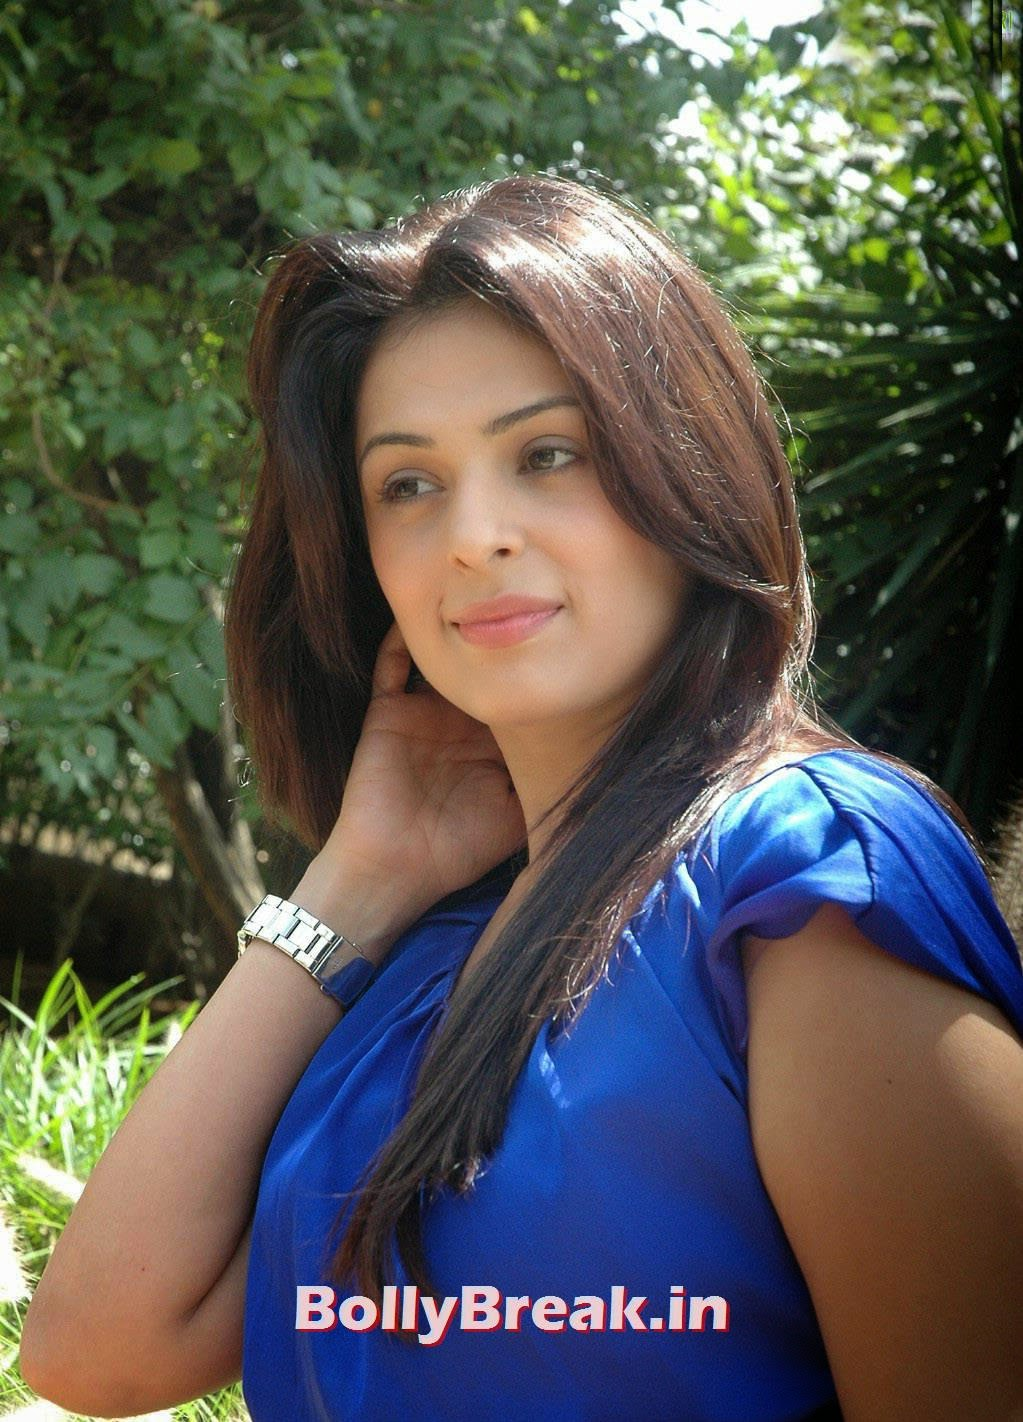 Actress Anjana Sukhani Photo Gallery, Anjana Sukhani Latest Pics in Blue Top & Jeans